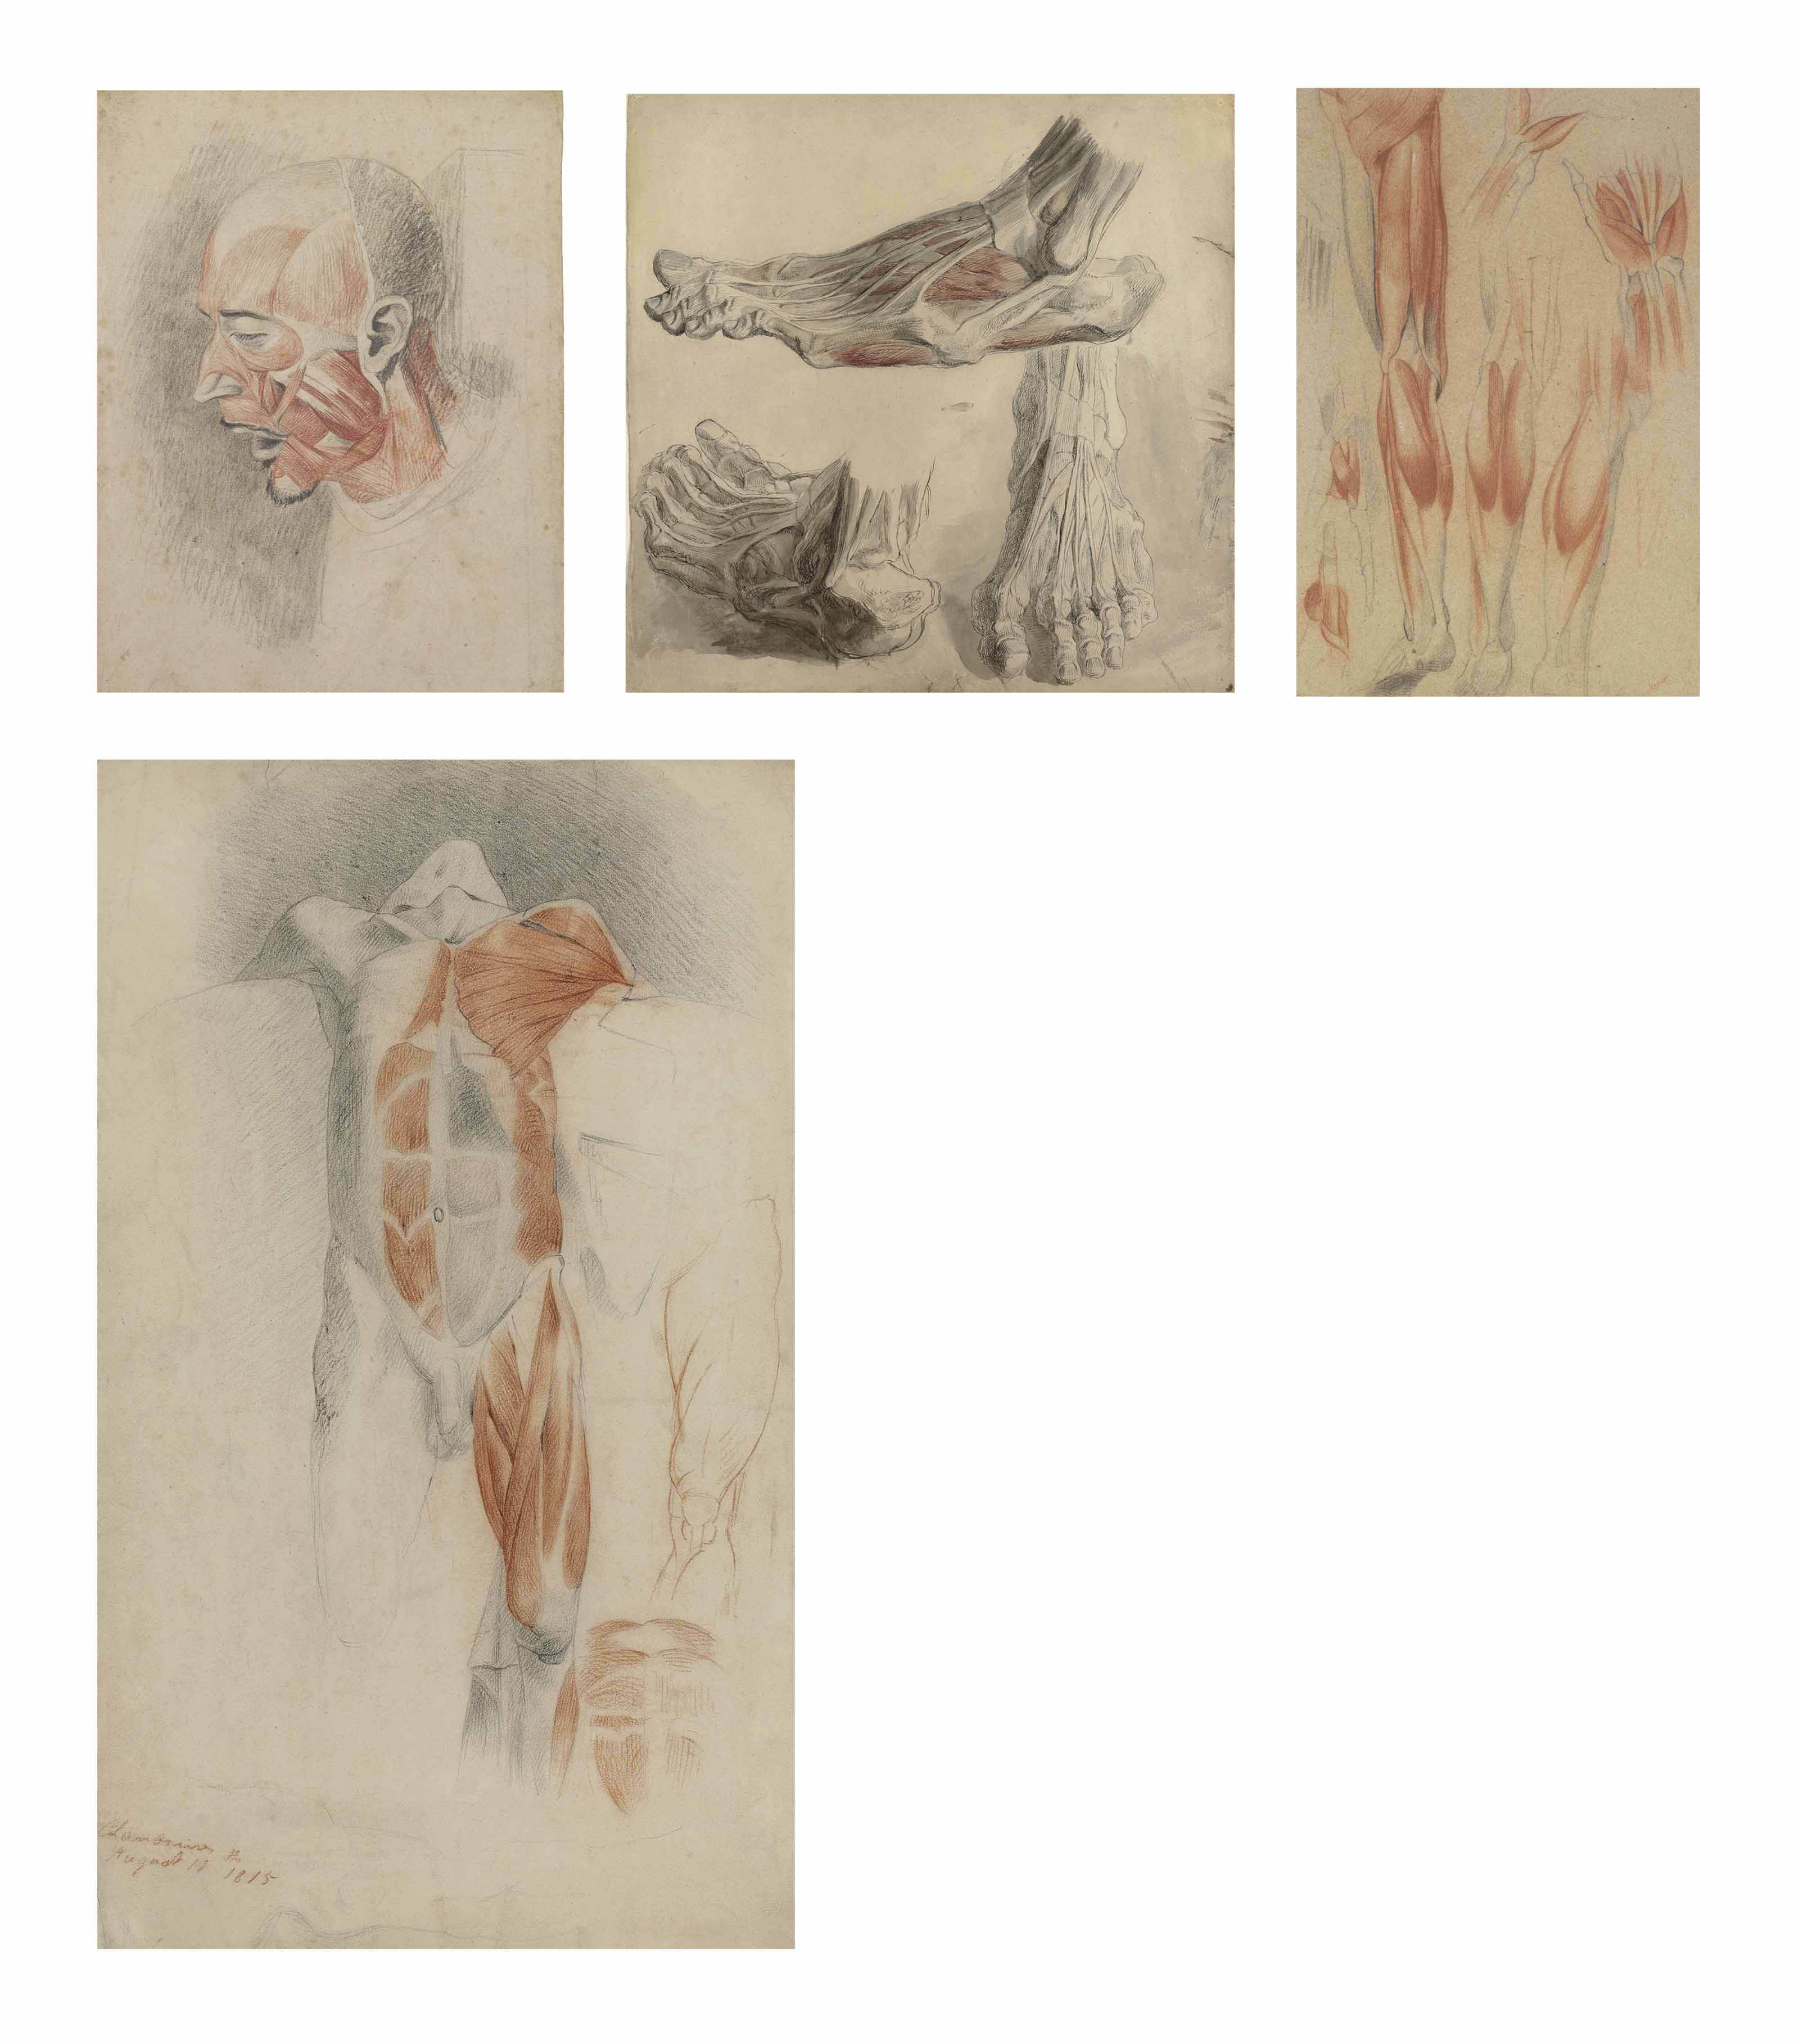 A group of fourteen écorché human figure studies including: The muscles of a leg from knee to foot; A back view of a male torso, from a dissection; Studies of the bones of a foot and a knee joint; The legs of a skeleton set in walking position; A cast of an écorché foot, seen from above; Three studies of an écorché foot (illustrated); The back view of the torso of an écorché cadaver (recto) and pencil studies of the right arm and legs of a male nude model by Haydon (verso); Several studies of an écorché leg and hand, possibly after Benjamin Robert Haydon (illustrated); A partly flayed head (recto) and unfinished chalk study of horse's head (verso) (illustrated); A partly dissected cadaver, after Haydon (illustrated); Study of a hand and the bones and muscles of the lower part of a leg (recto) and black chalk male figure studies by Haydon (verso); The muscles of a right arm; A side view of the bones and muscles of a left hand overlaid with two studies by Haydon of a man's right leg